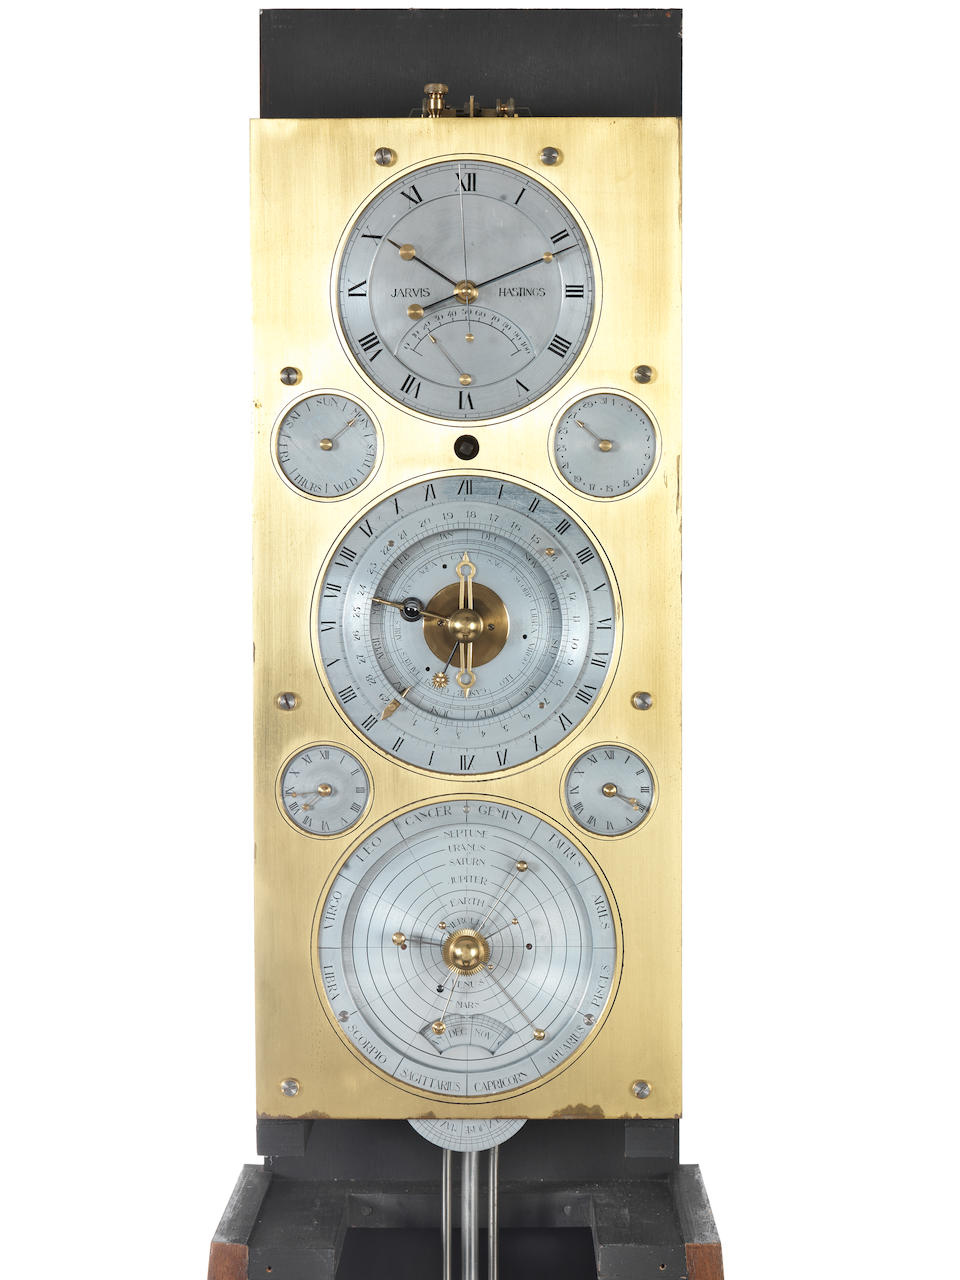 A Three Month Going Astronomical Longcase Timepiece by Jarvis, Hastings, 1984 Jarvis, Hastings, 1984